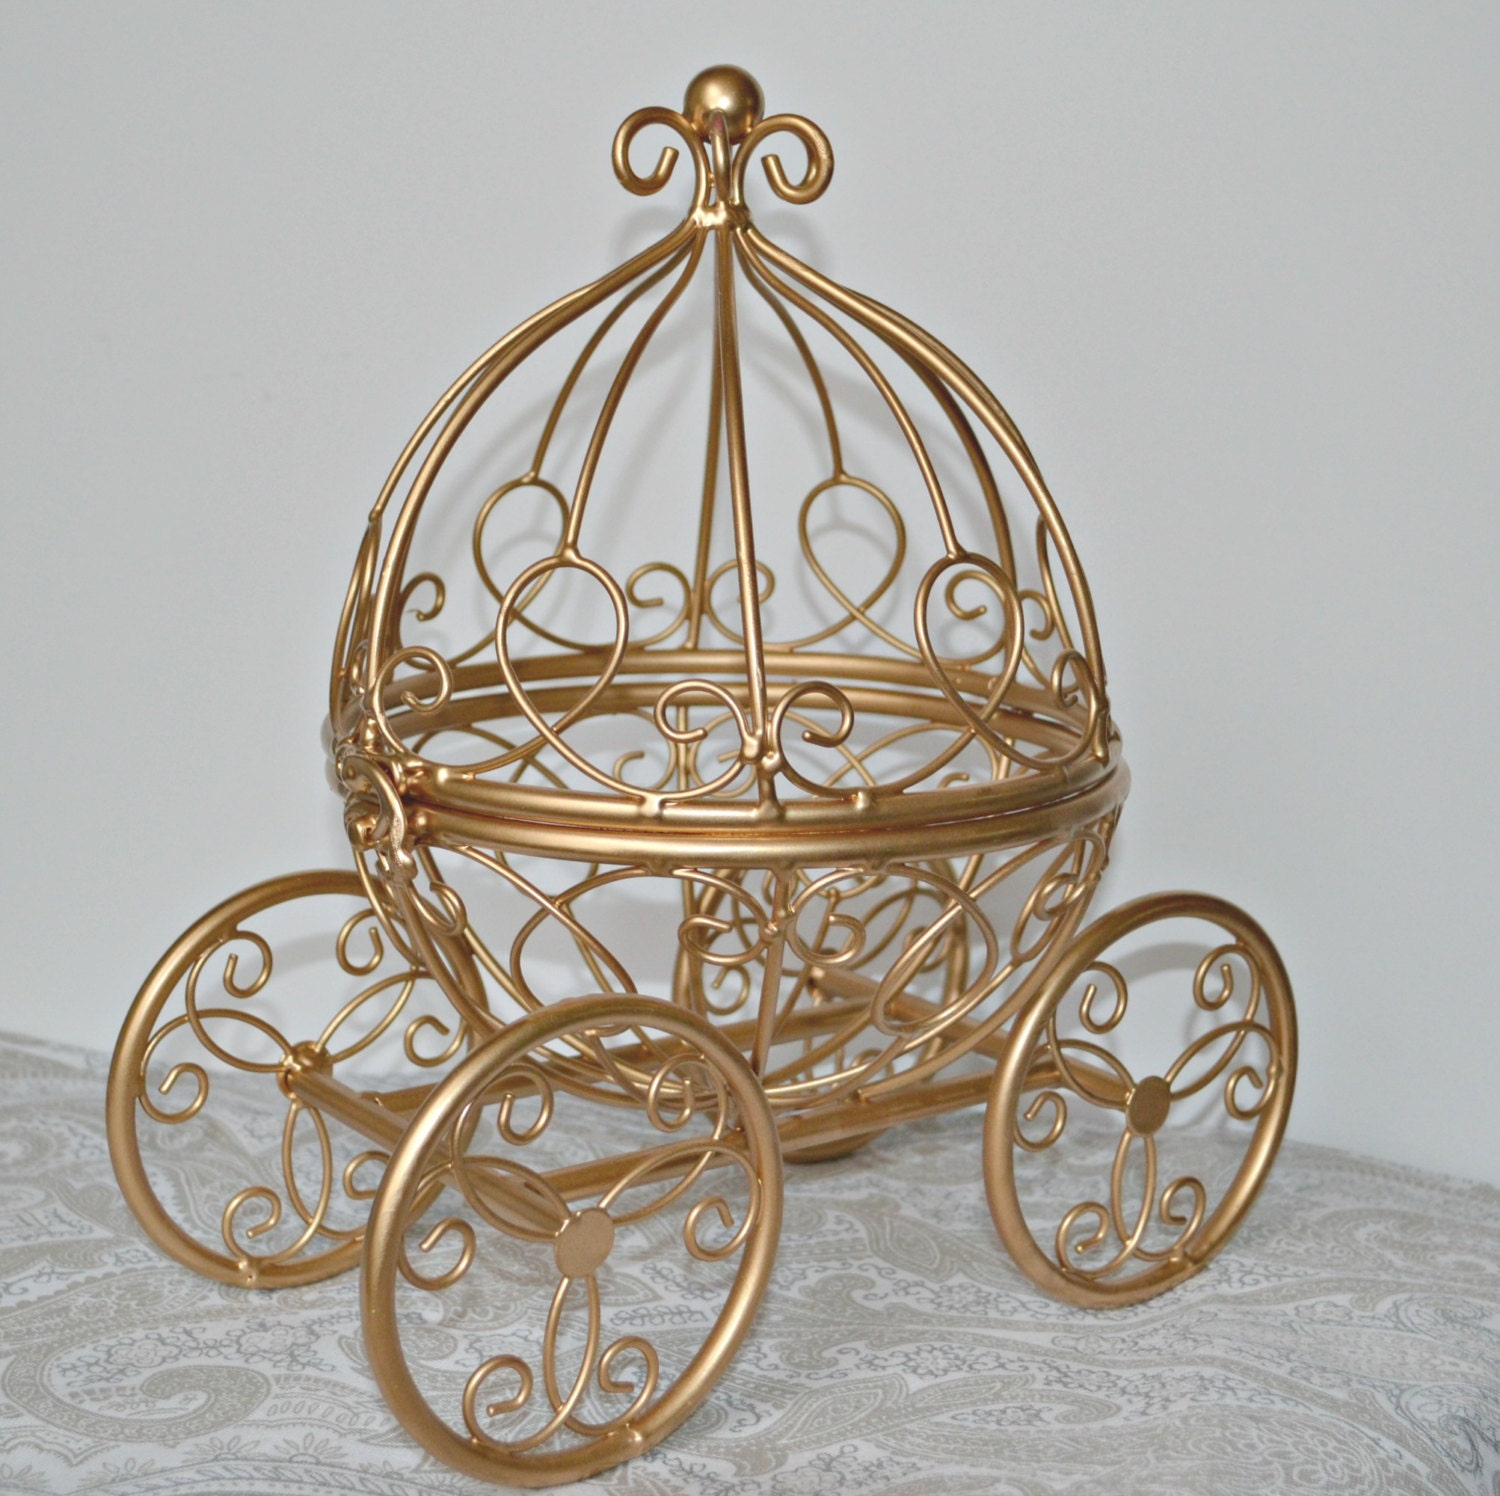 Gold wire cinderella carriage fairytale wedding ball